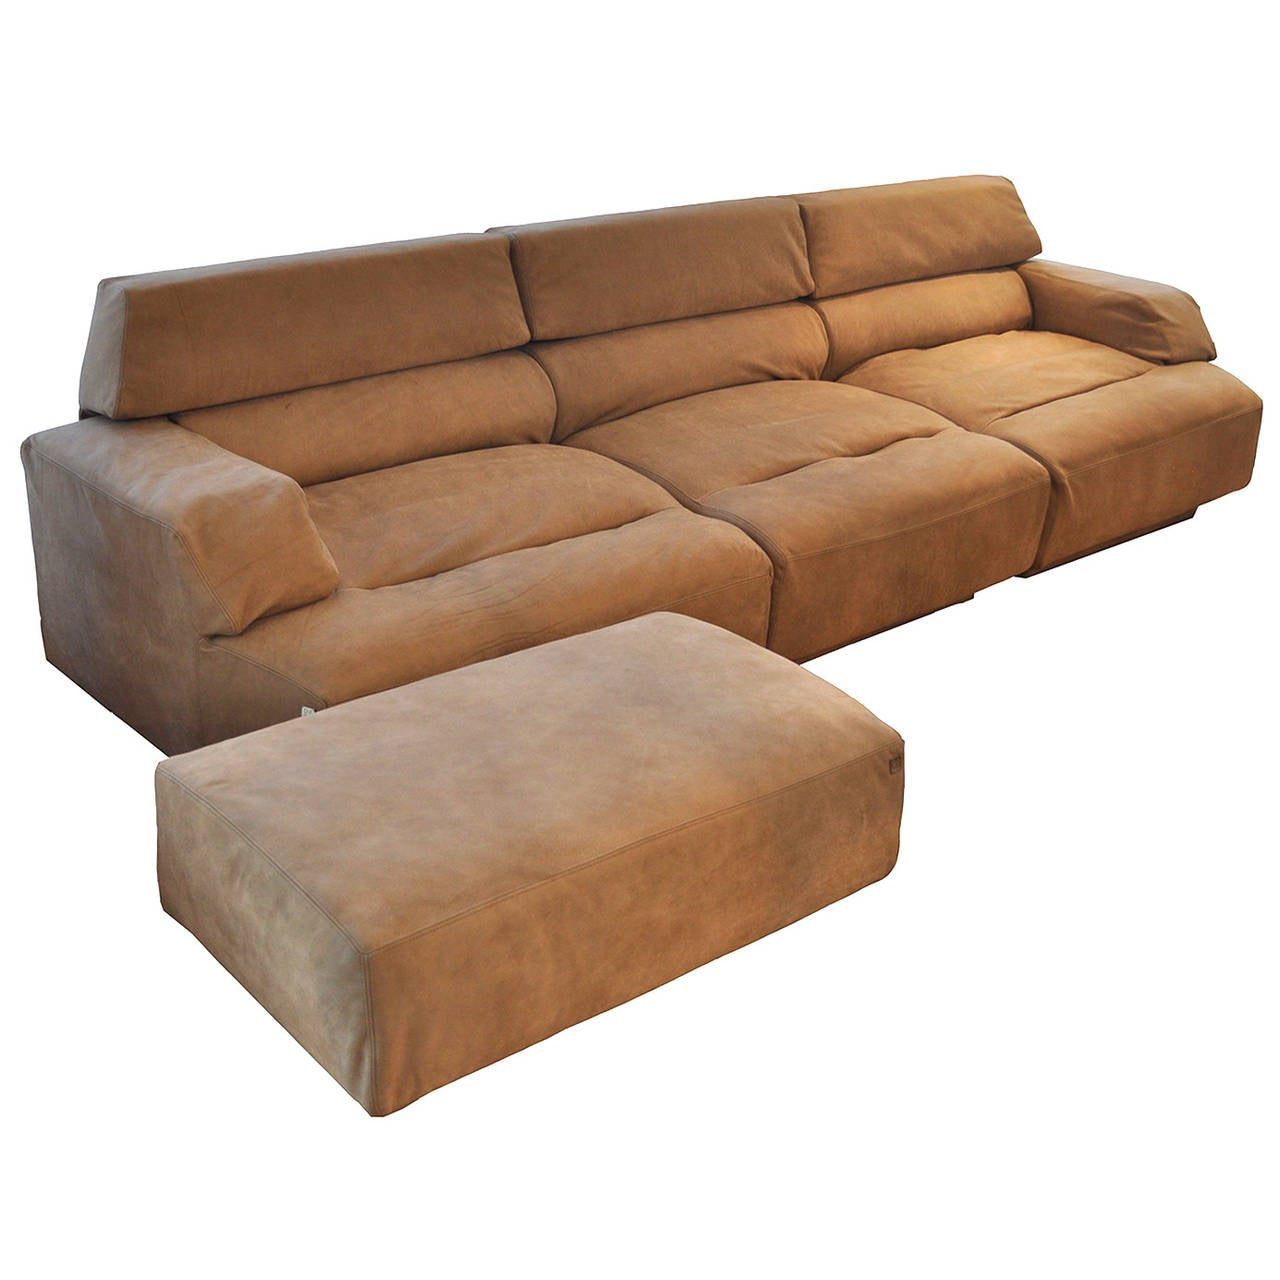 Quot Virgo Quot Sofa And Ottoman At 1stdibs